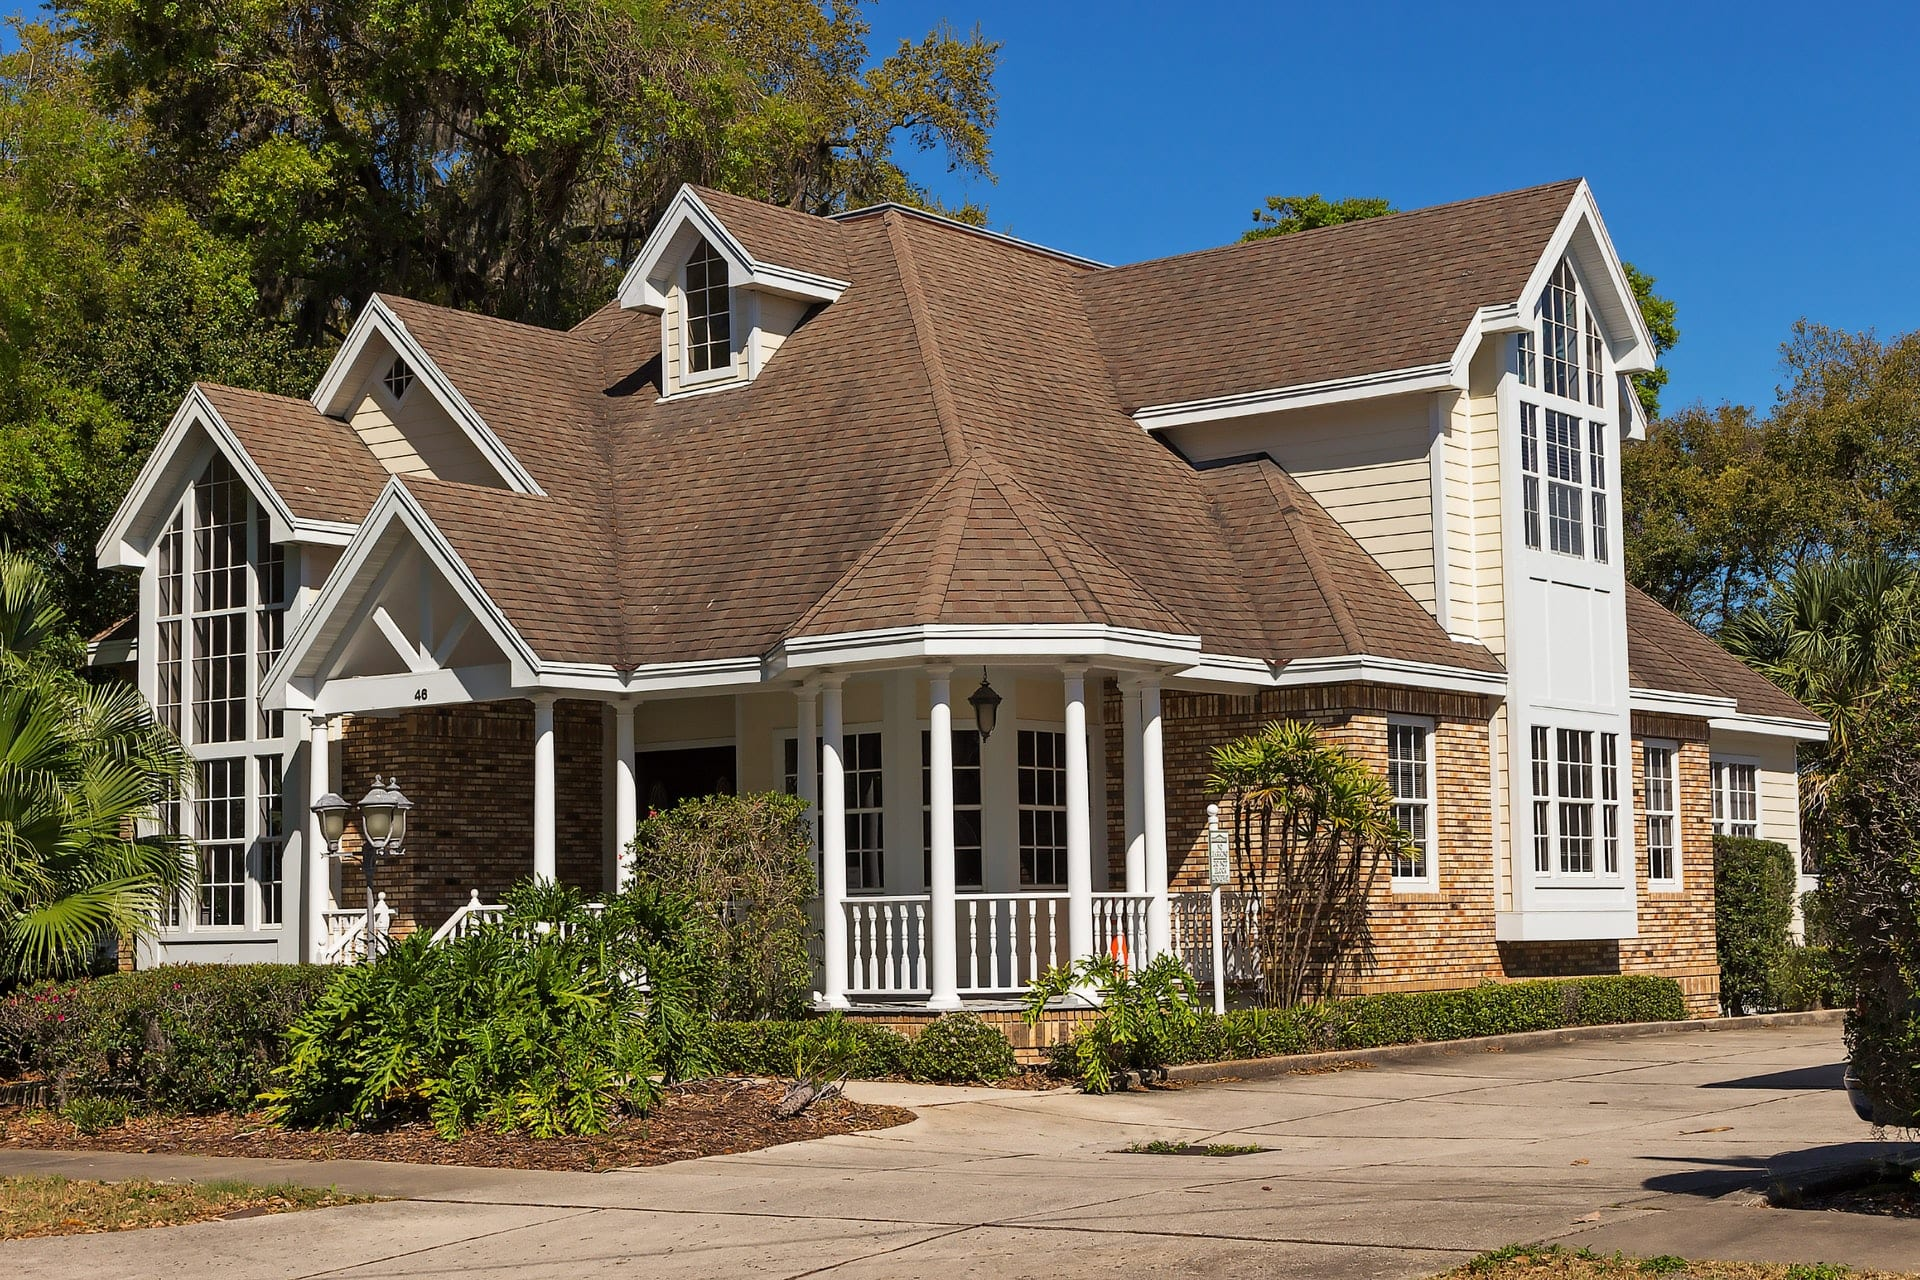 home with very sloped roof for increased cost to replace roof shingles